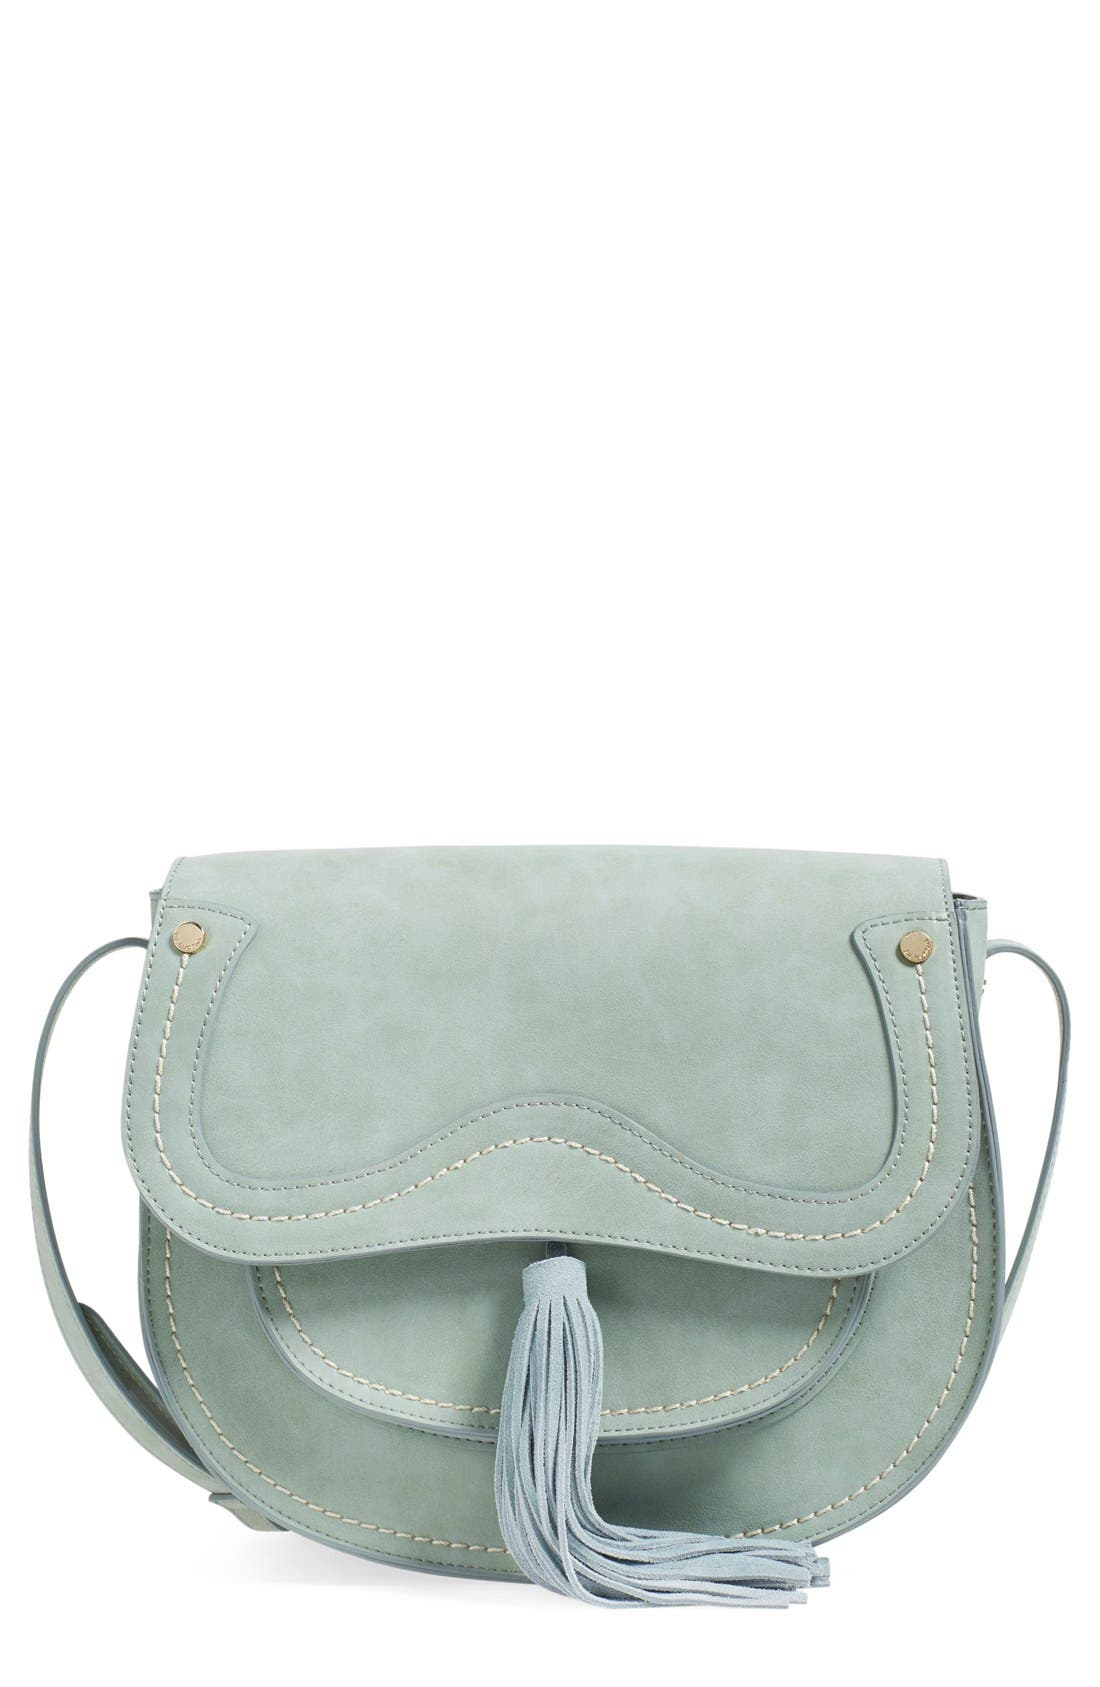 Main Image - Steven by Steve Madden Faux Leather Saddle Bag